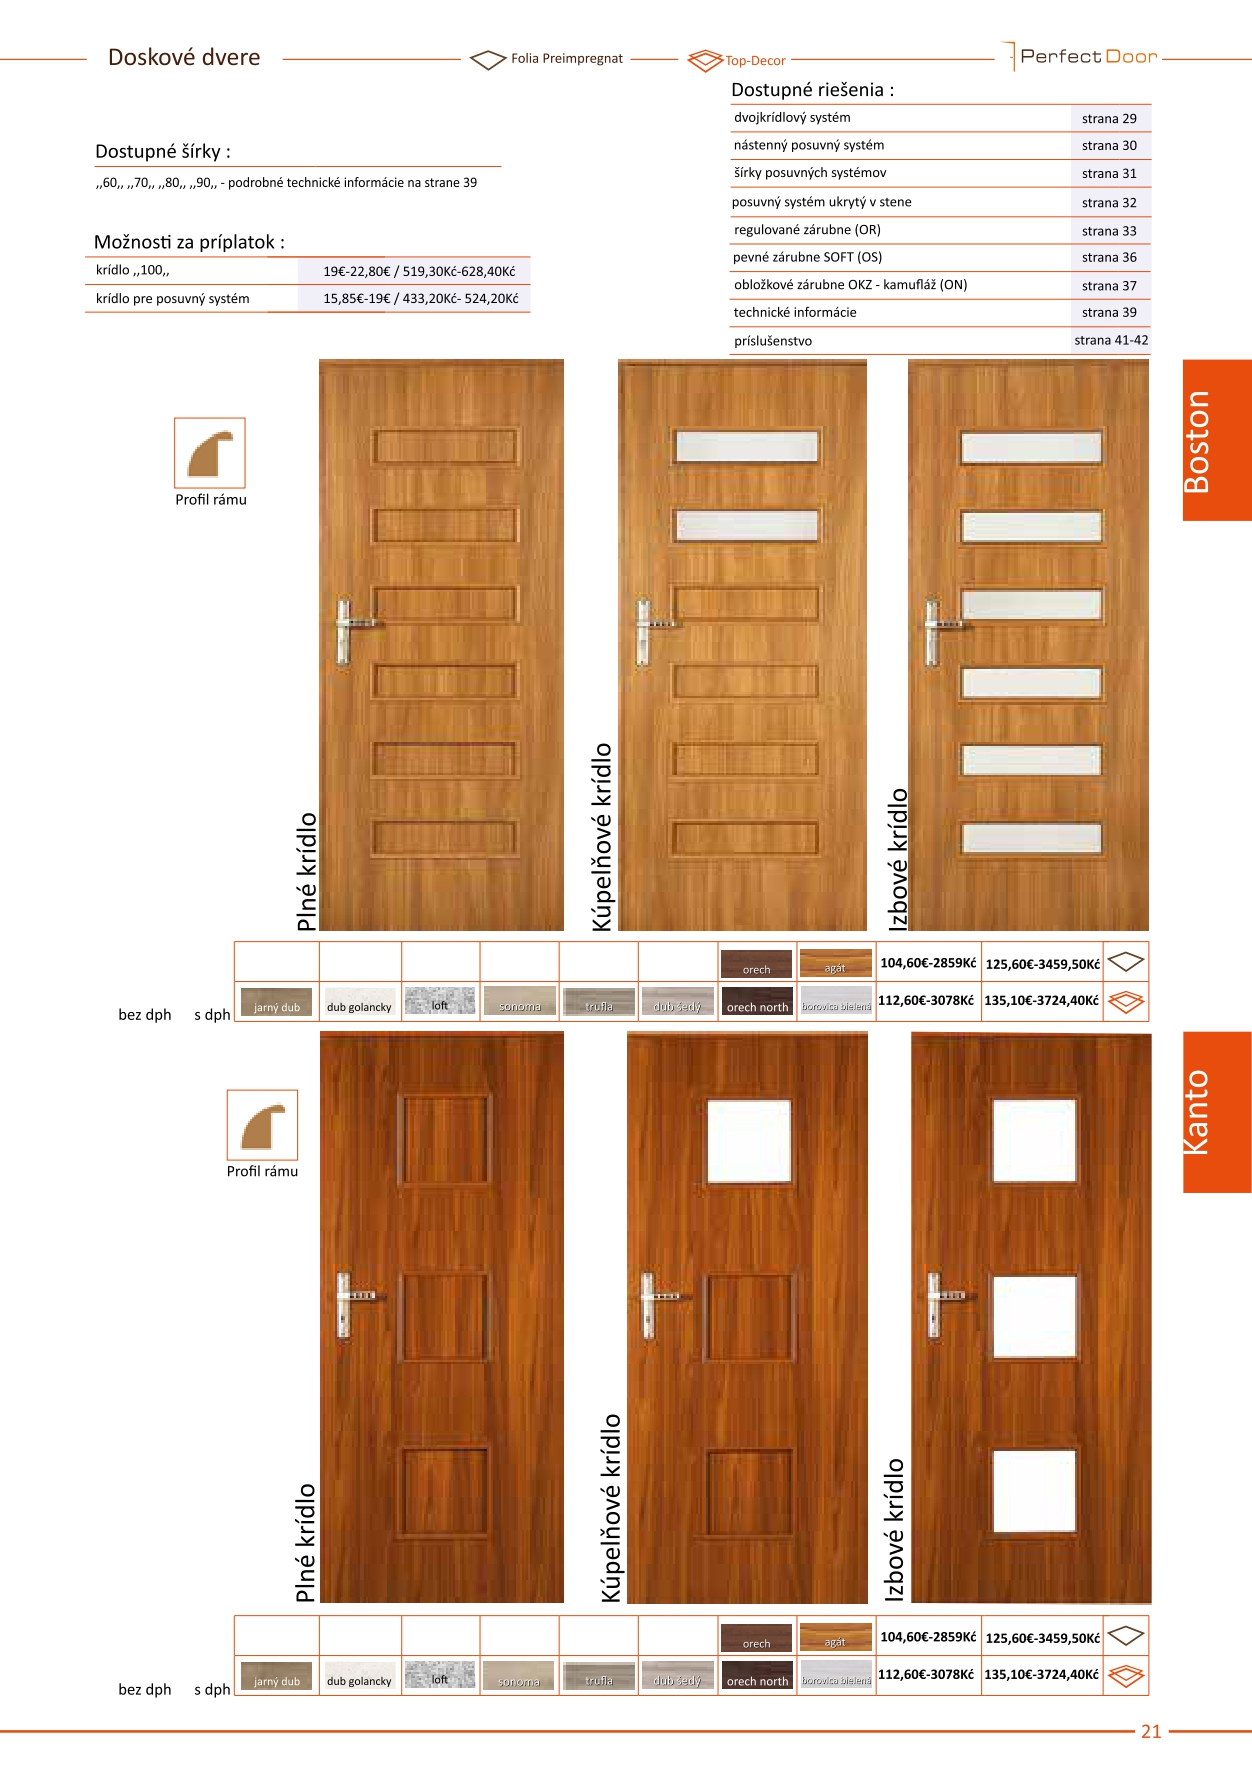 Perfectdoor katalog  1 2019 pages-to-jpg-0021